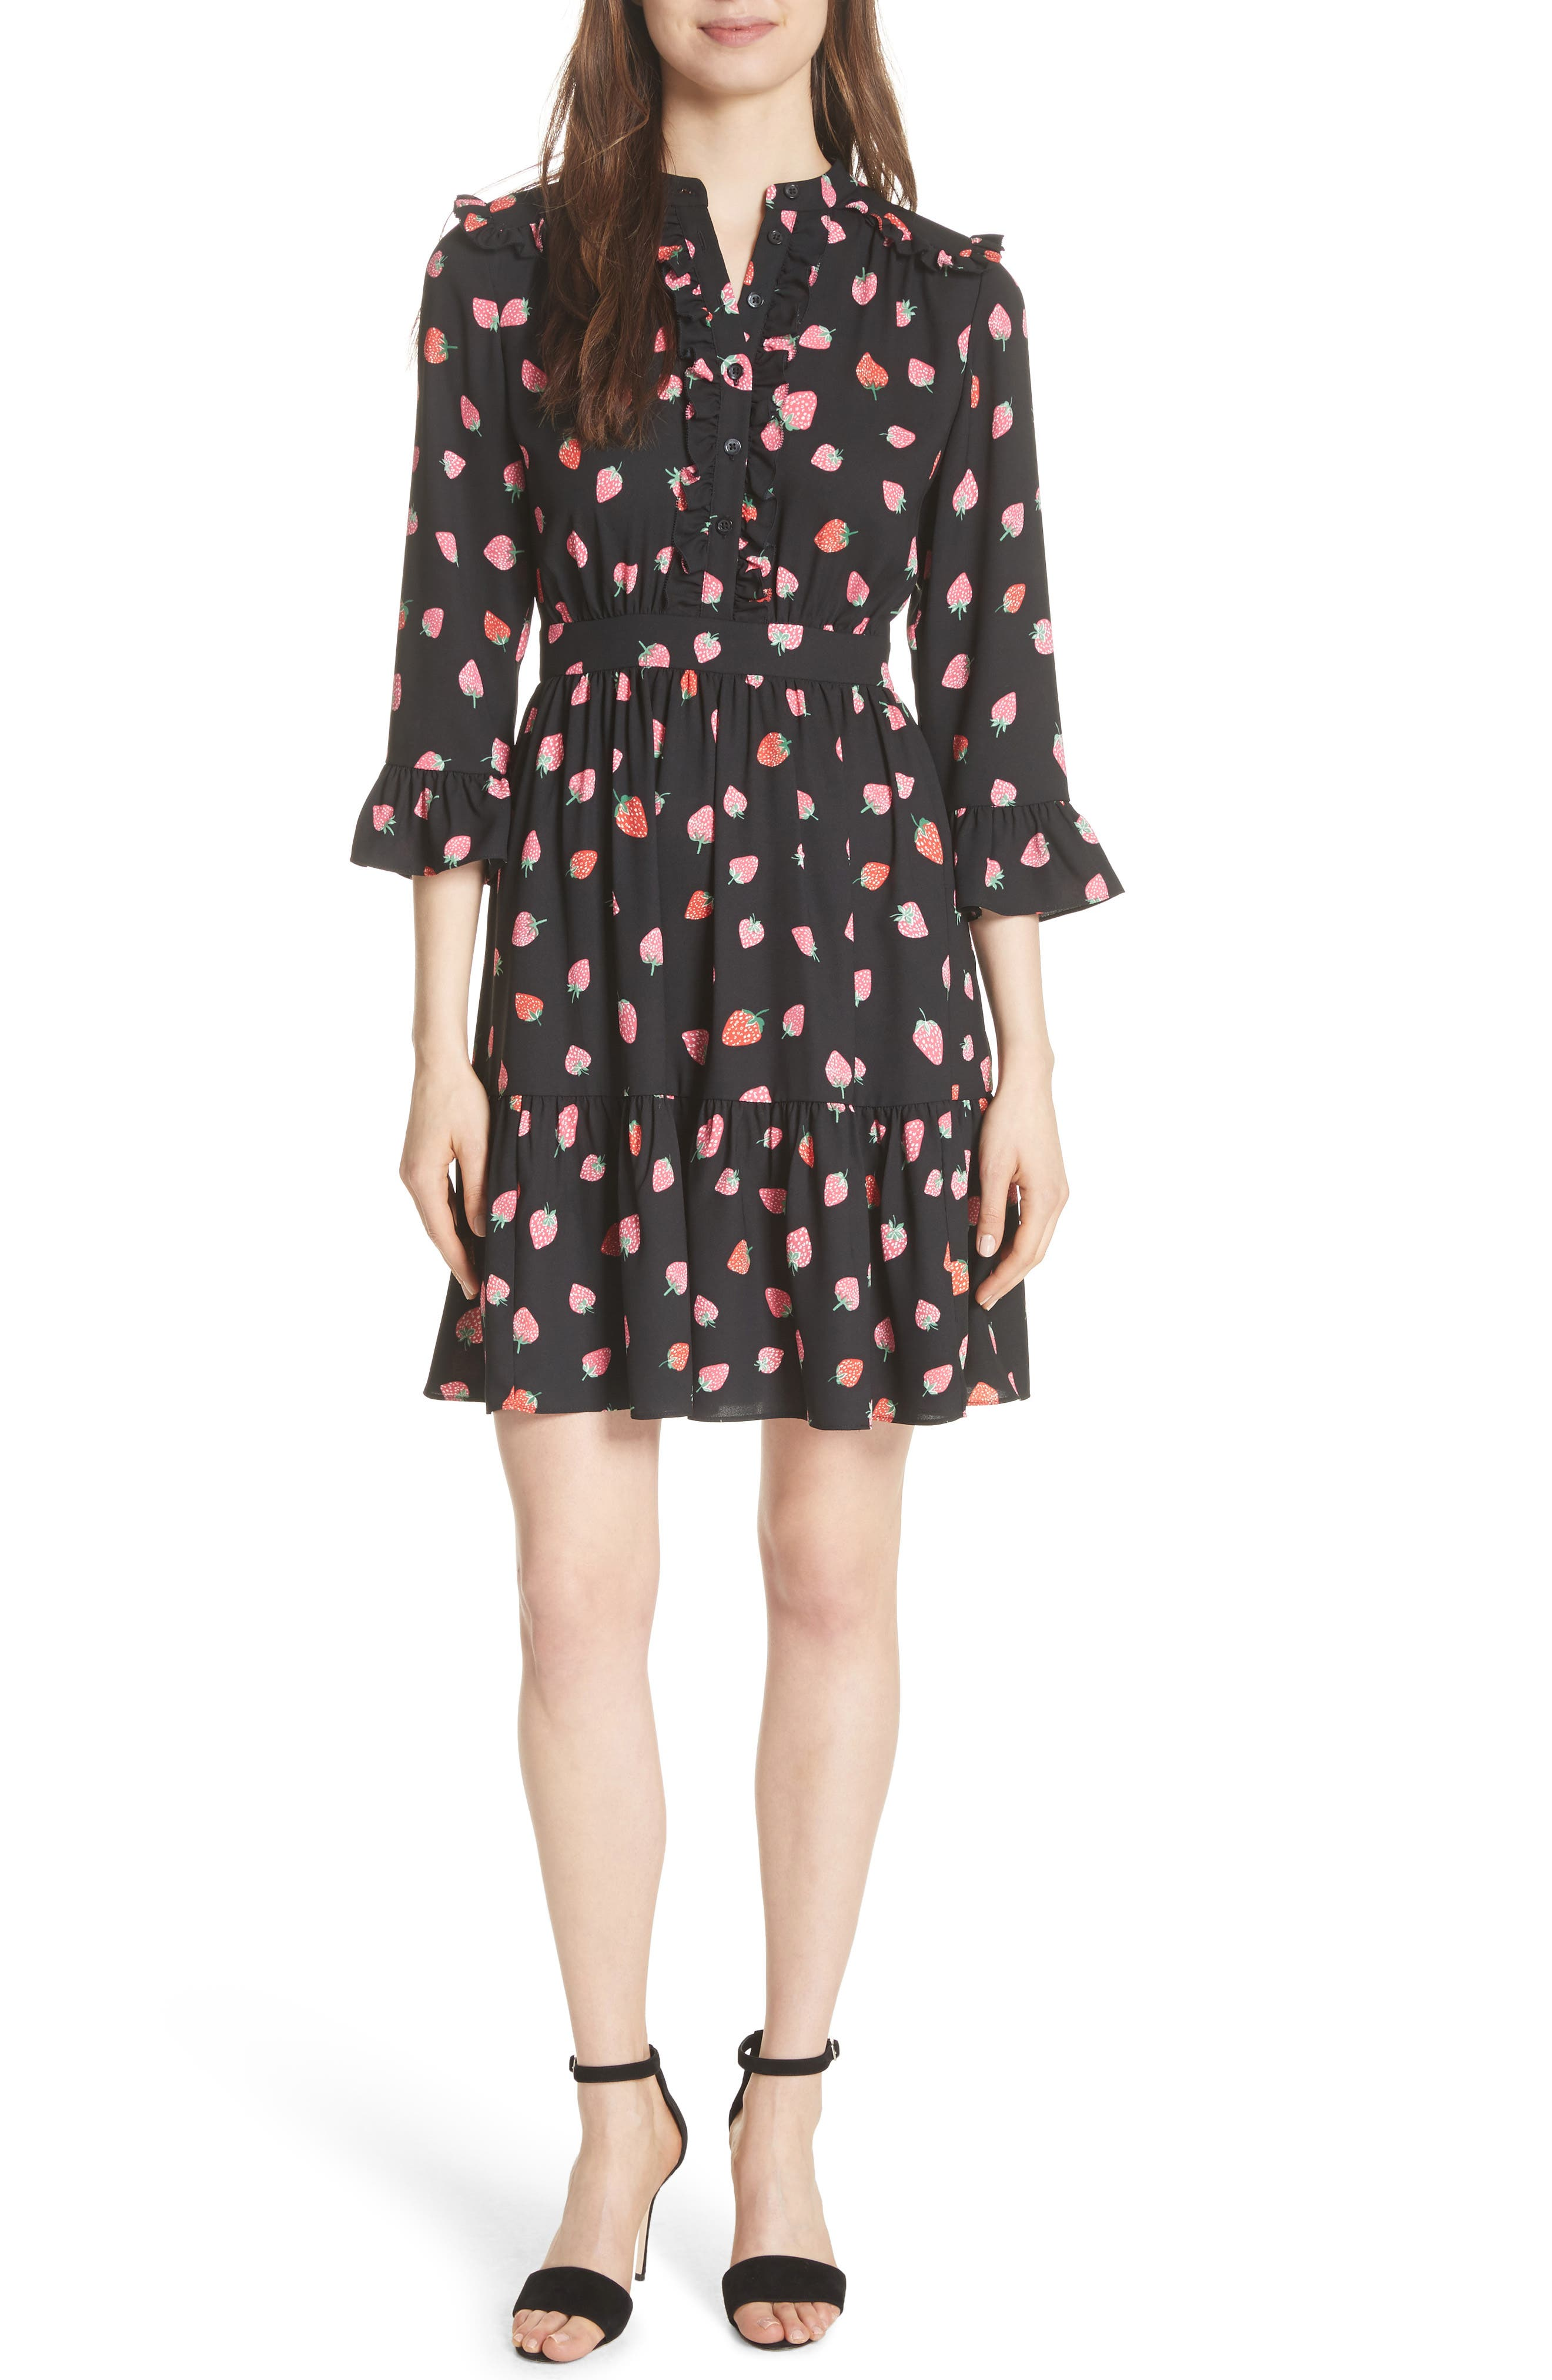 tossed berry shirtdress,                         Main,                         color, 001